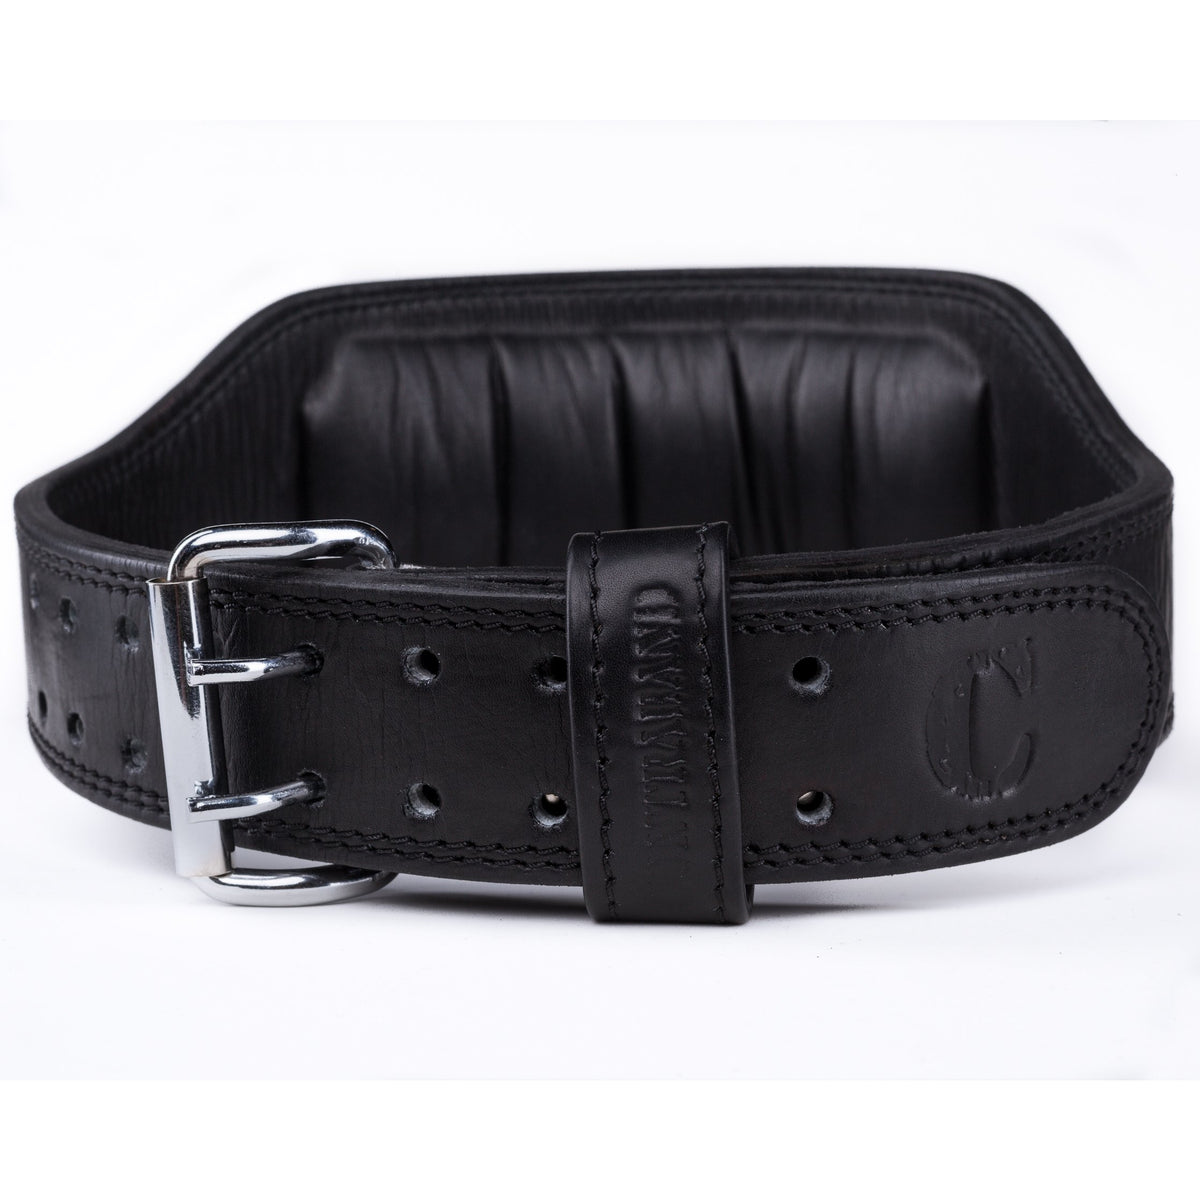 Contraband Black Label 4360 6in Top Grain Padded Leather Belt